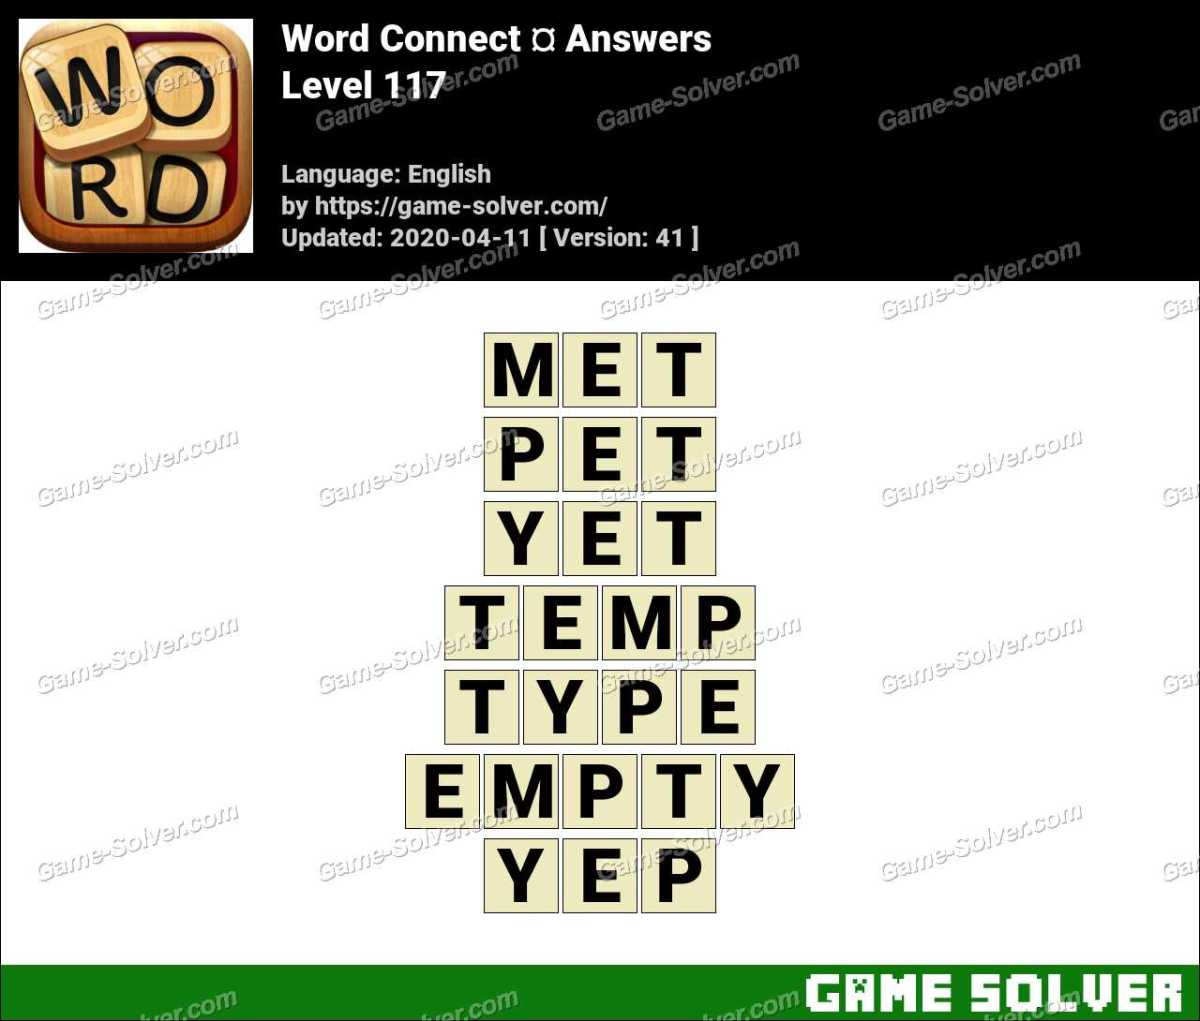 Word Connect Level 117 Answers